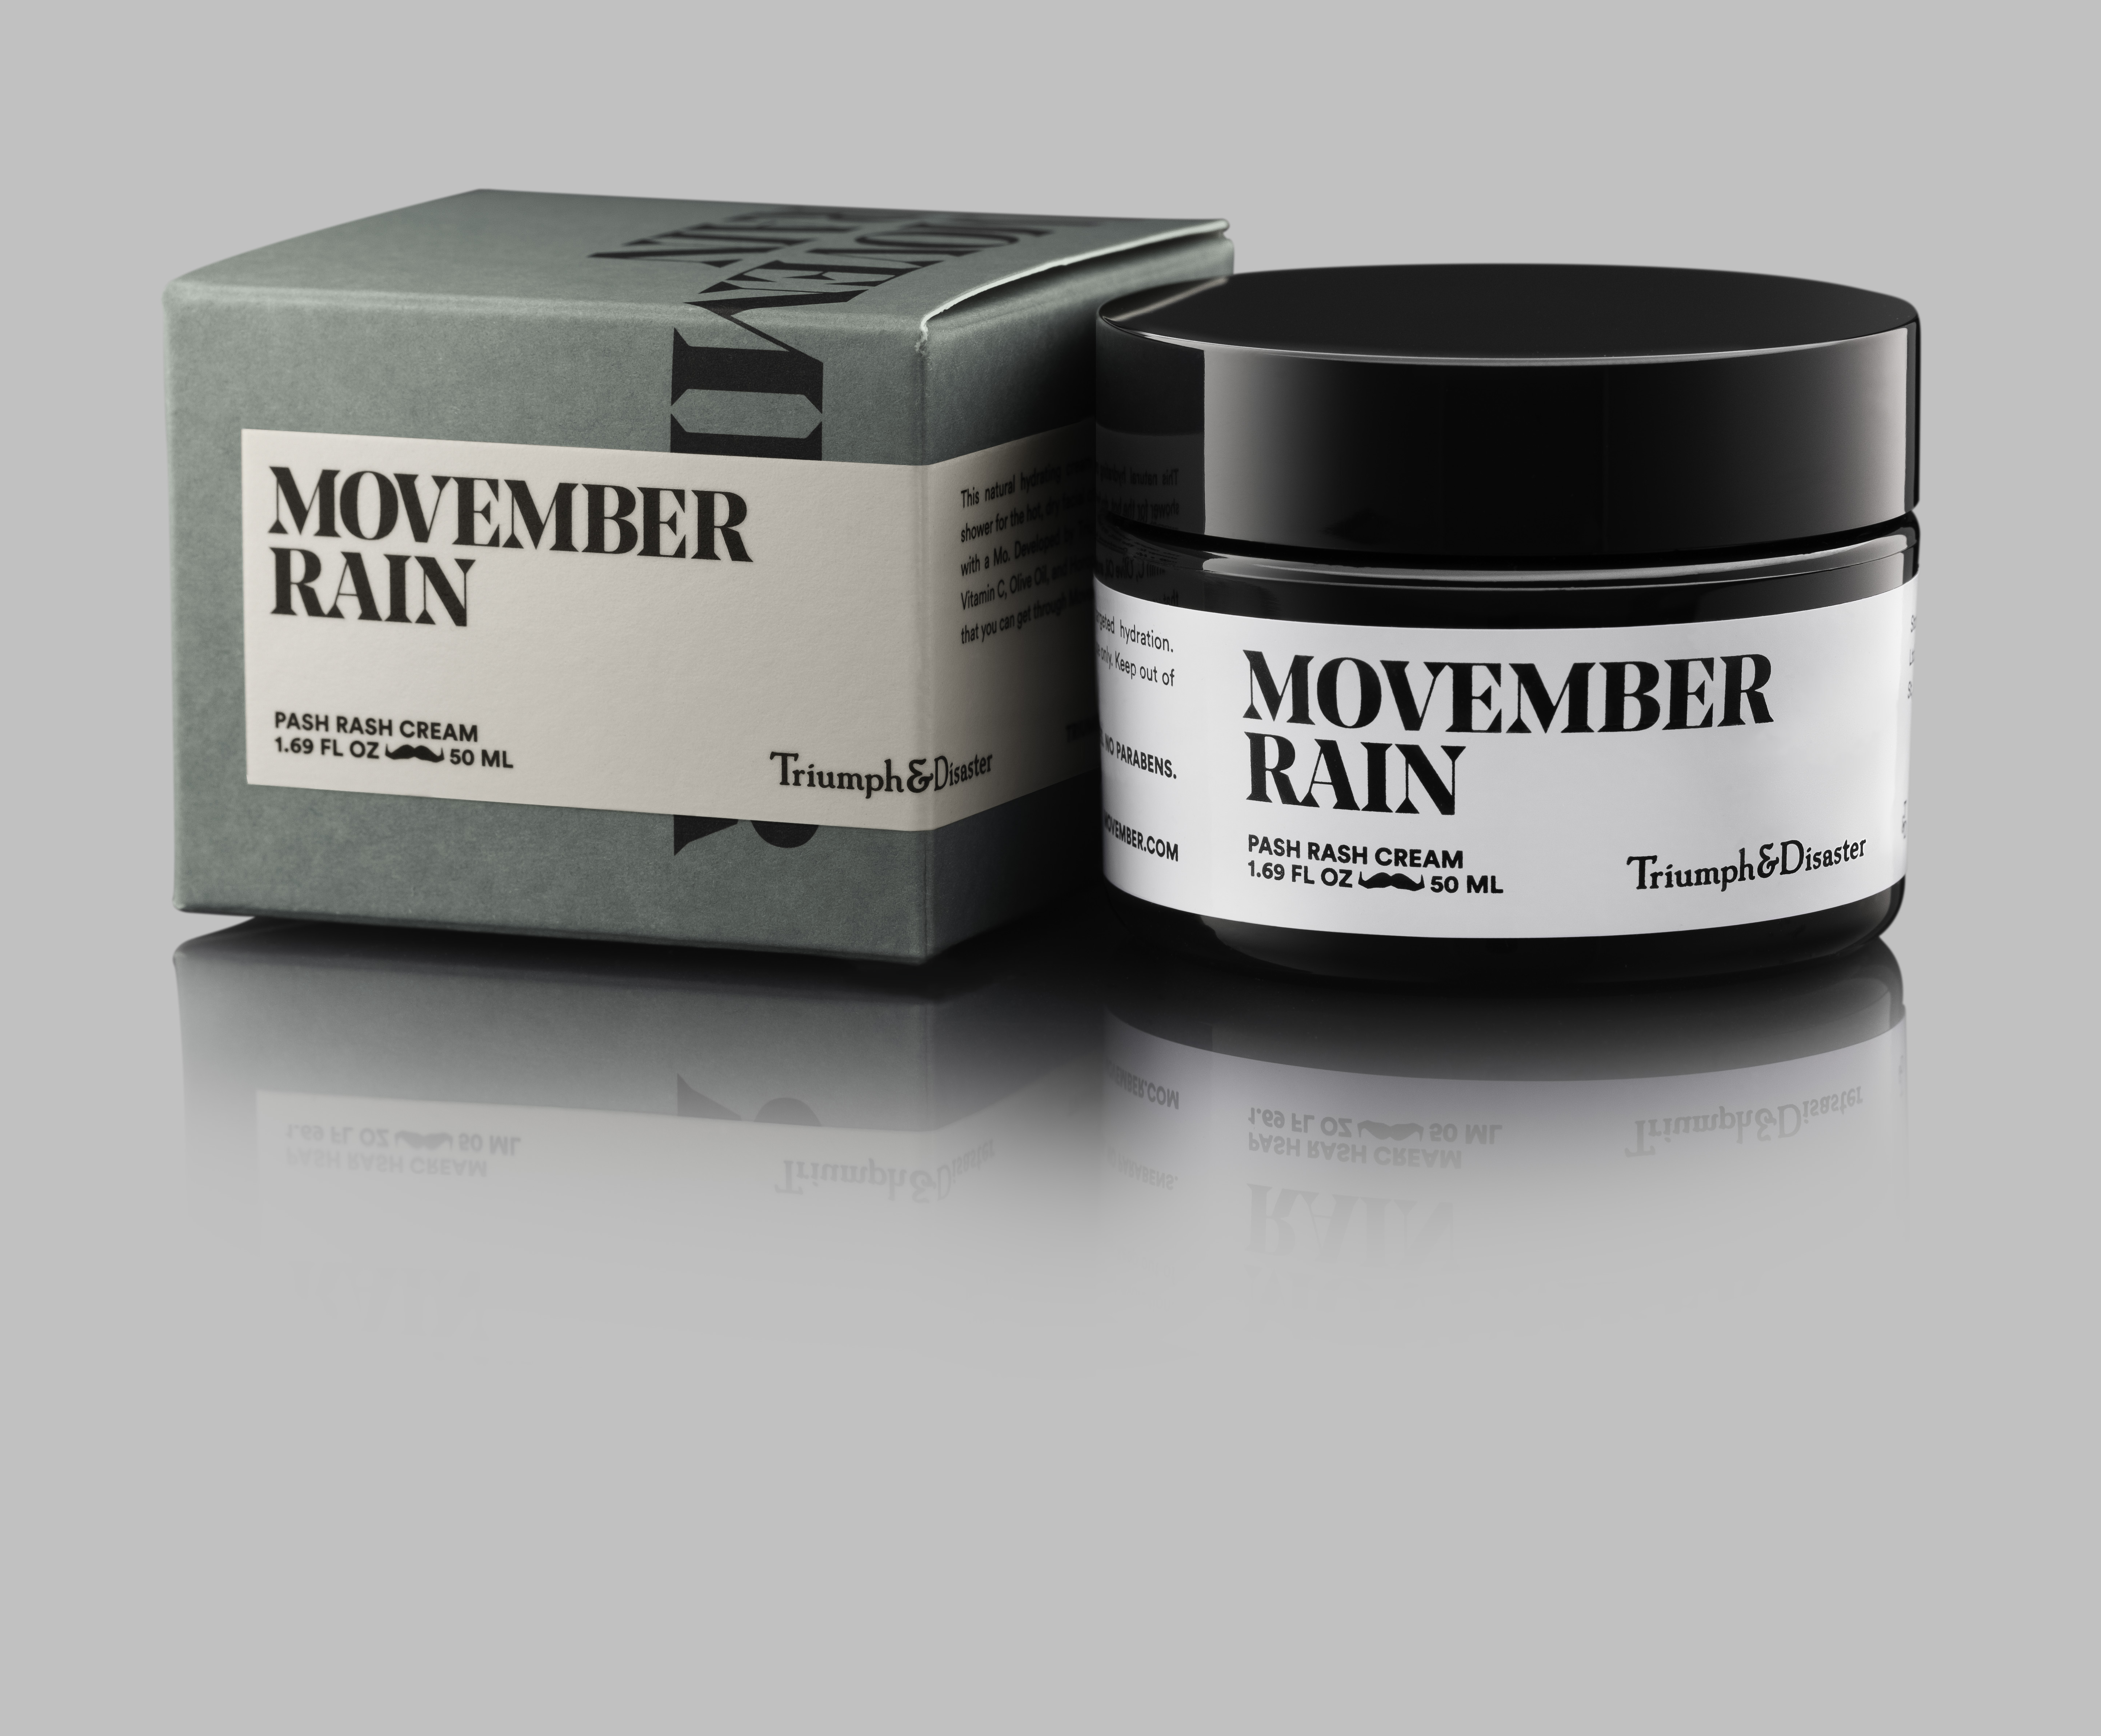 Movember probes the prickly problem of pash rash in latest campaign via Chin & Ching